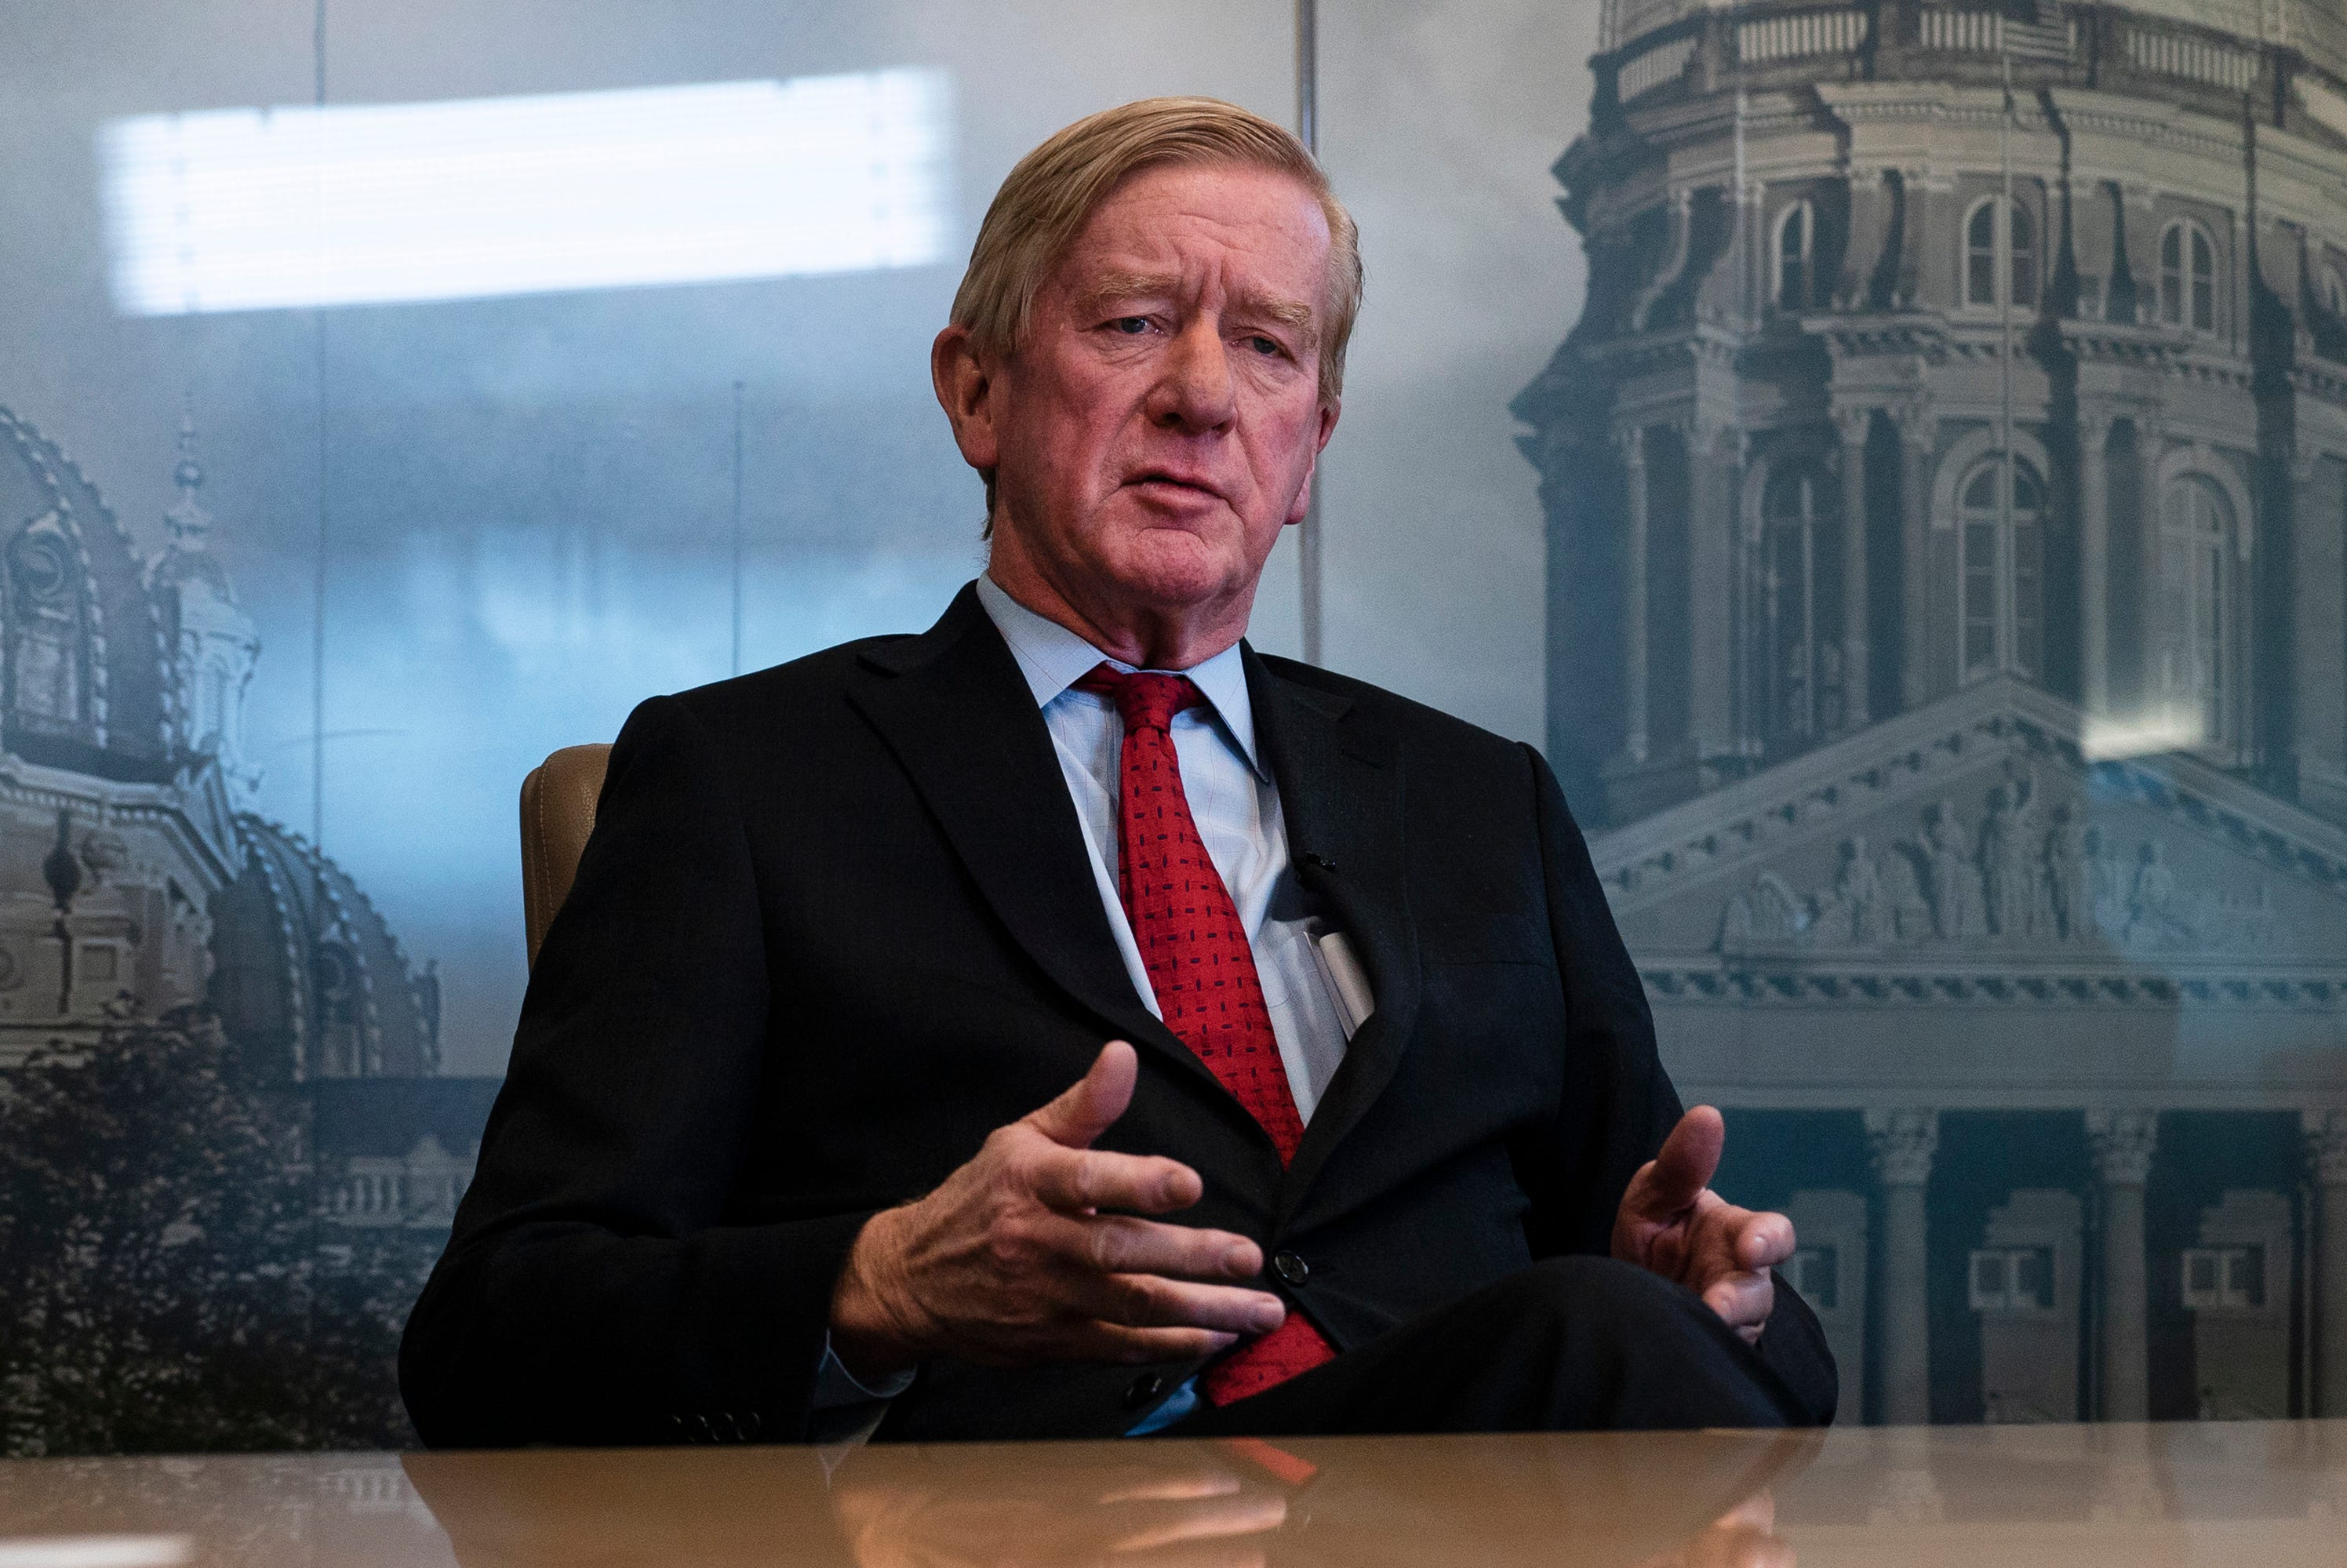 Bill Weld: Trump hijacked the Republican brand. I can restore its principles.